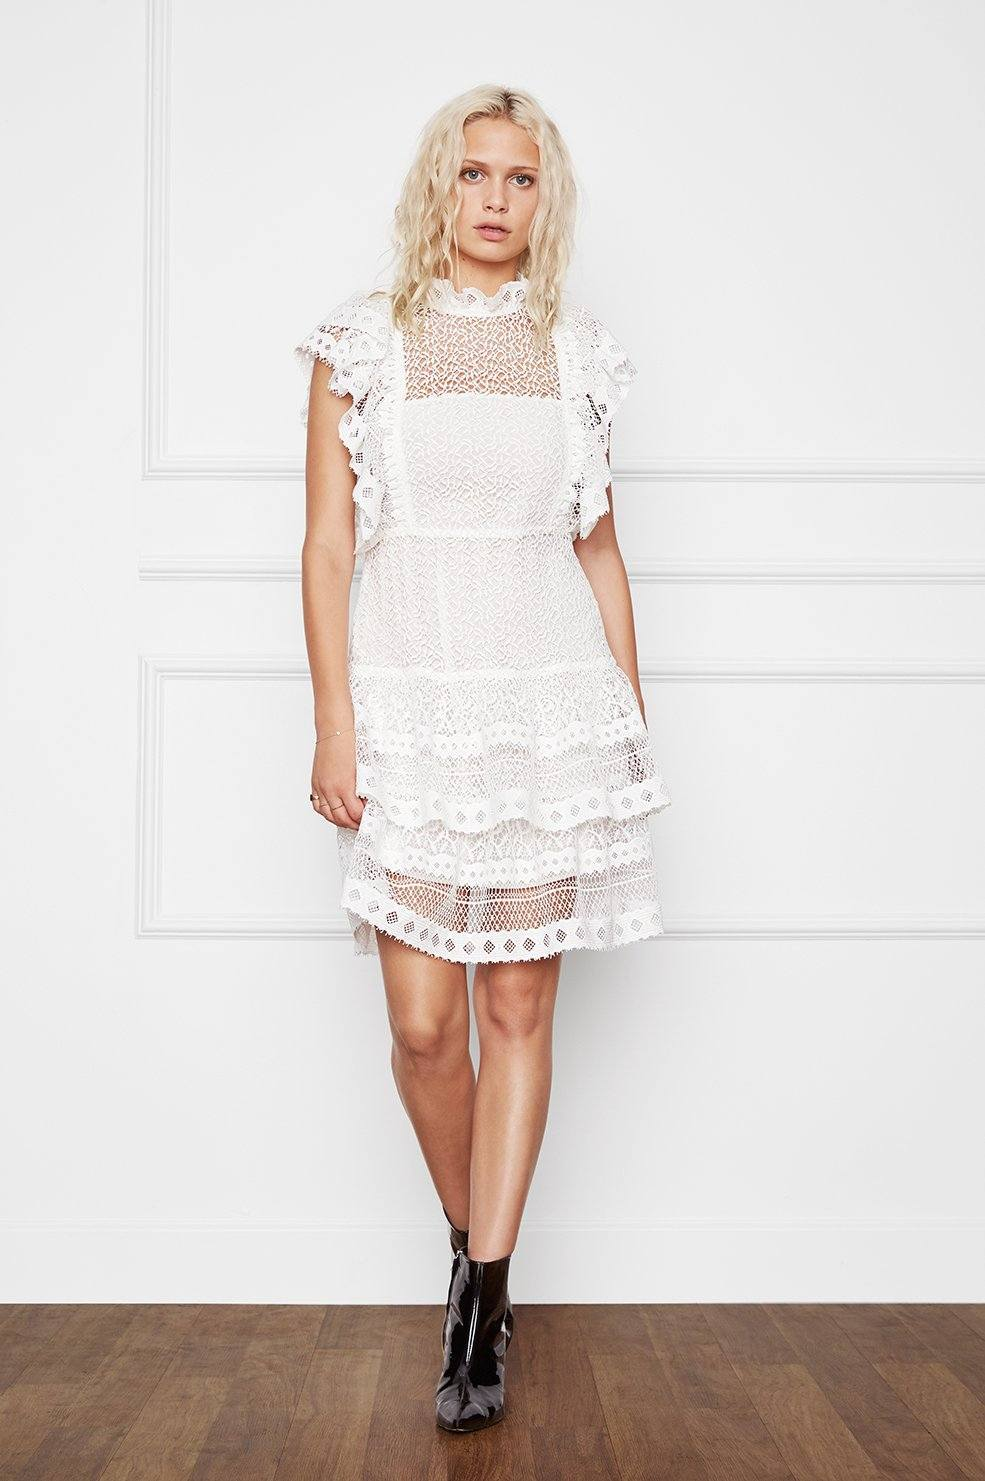 ANINE-BING-PENELOPE-DRESS-WHITE-AB21-038-01_1286.jpg